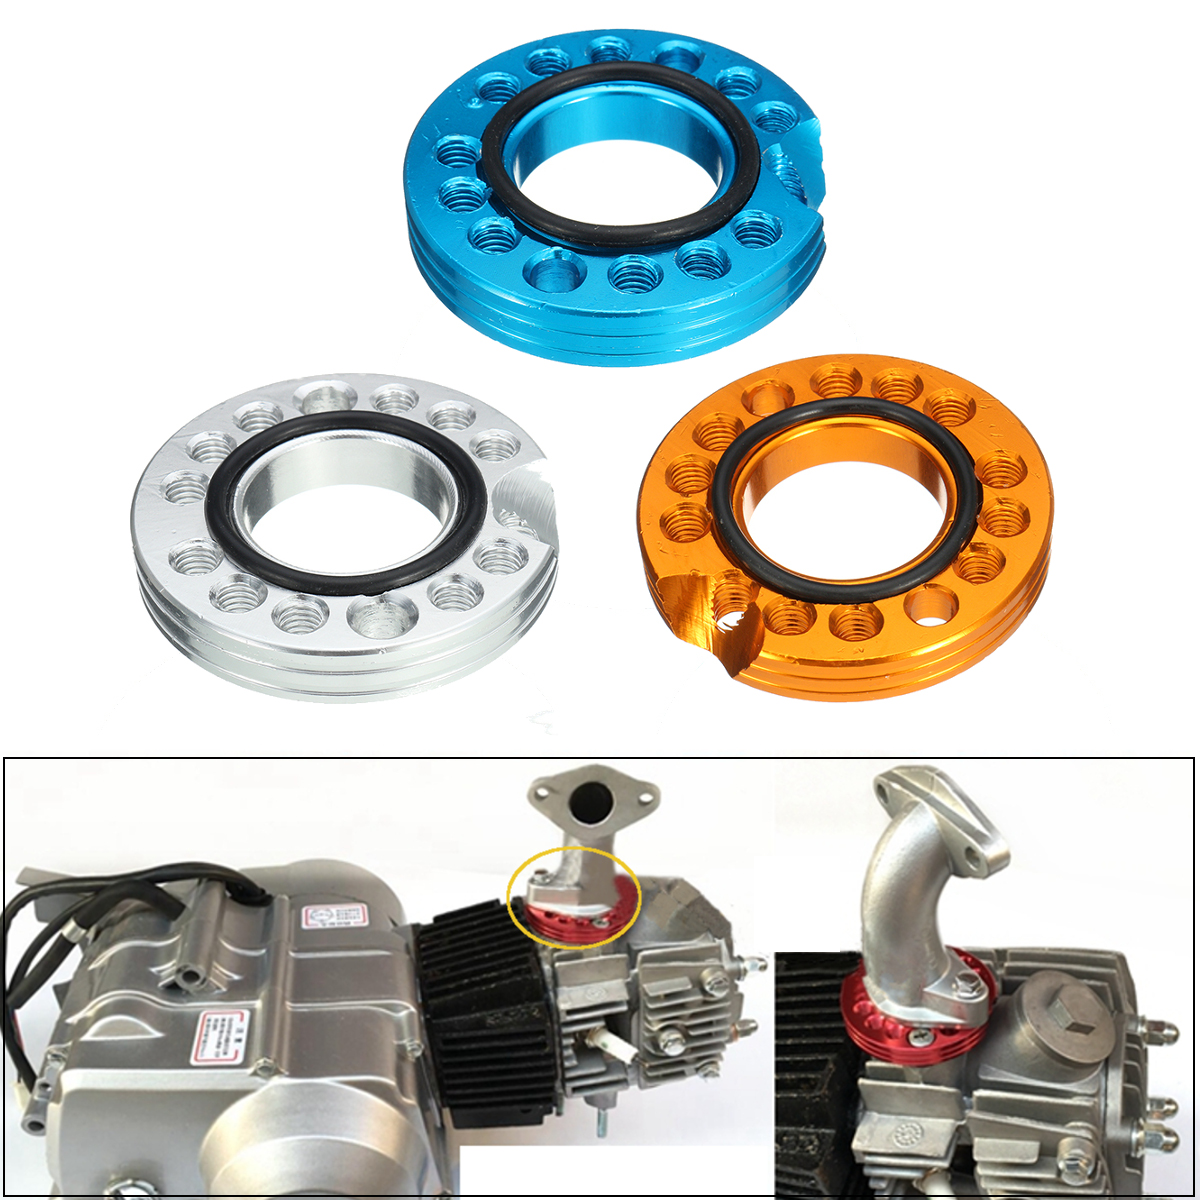 Carburettor Inlet Manifold Spinner Plate for 90cc 110cc 125cc Pit Dirt Bike ATV